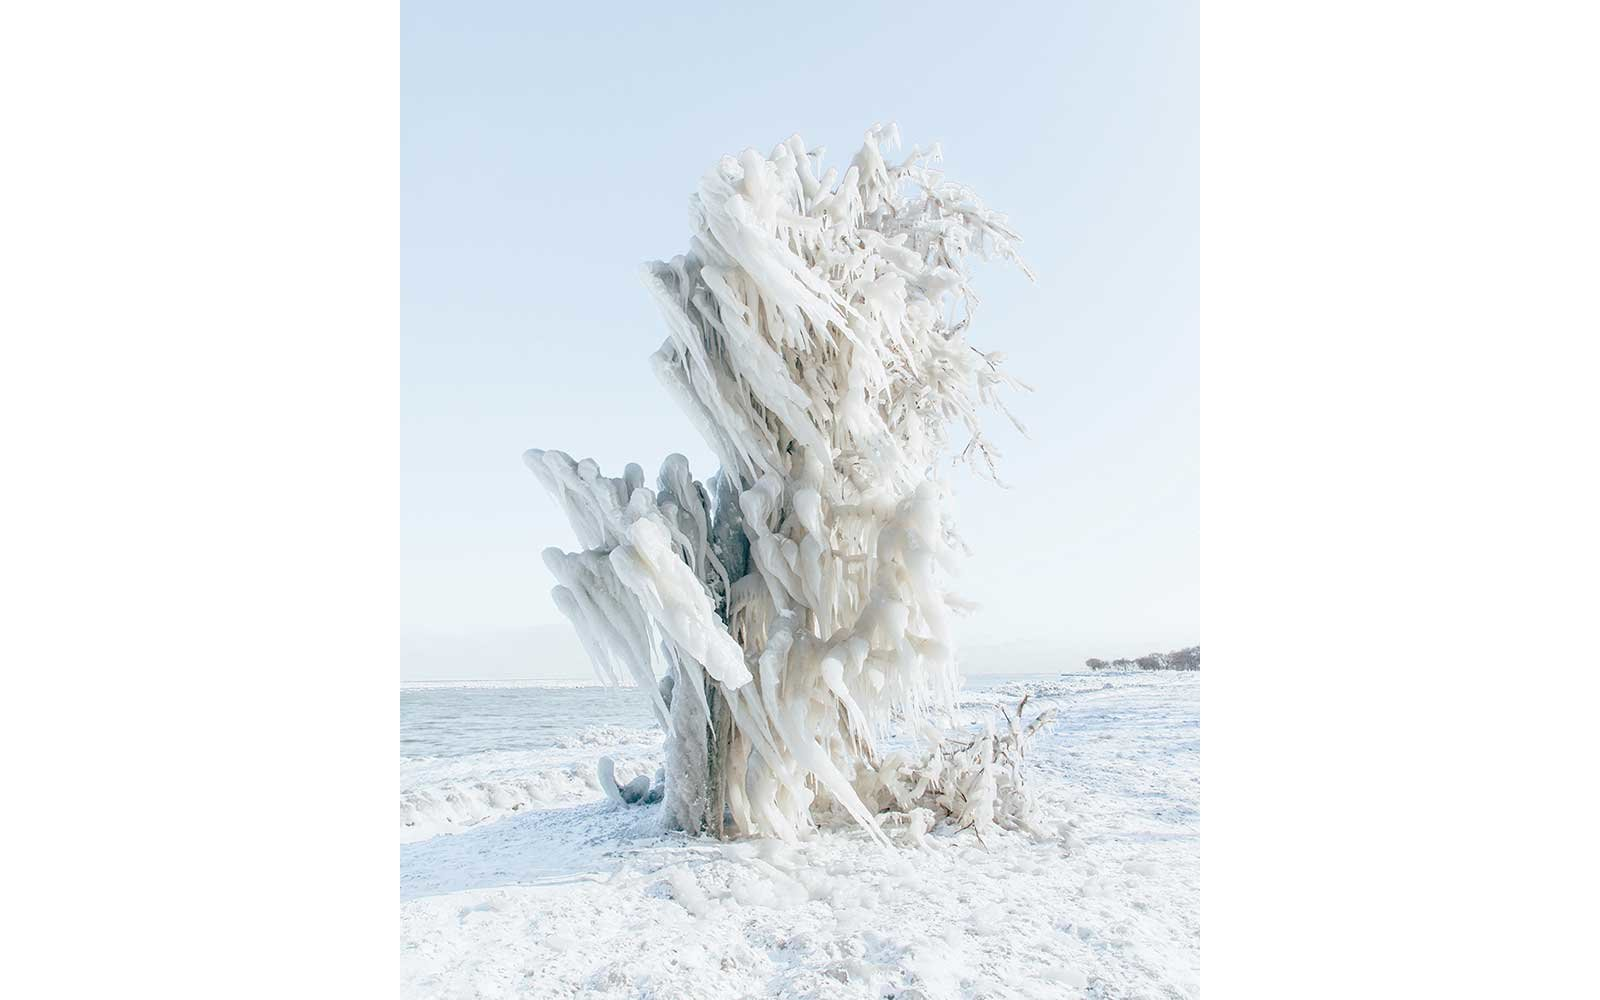 Ice sculpture on the Great Lakes